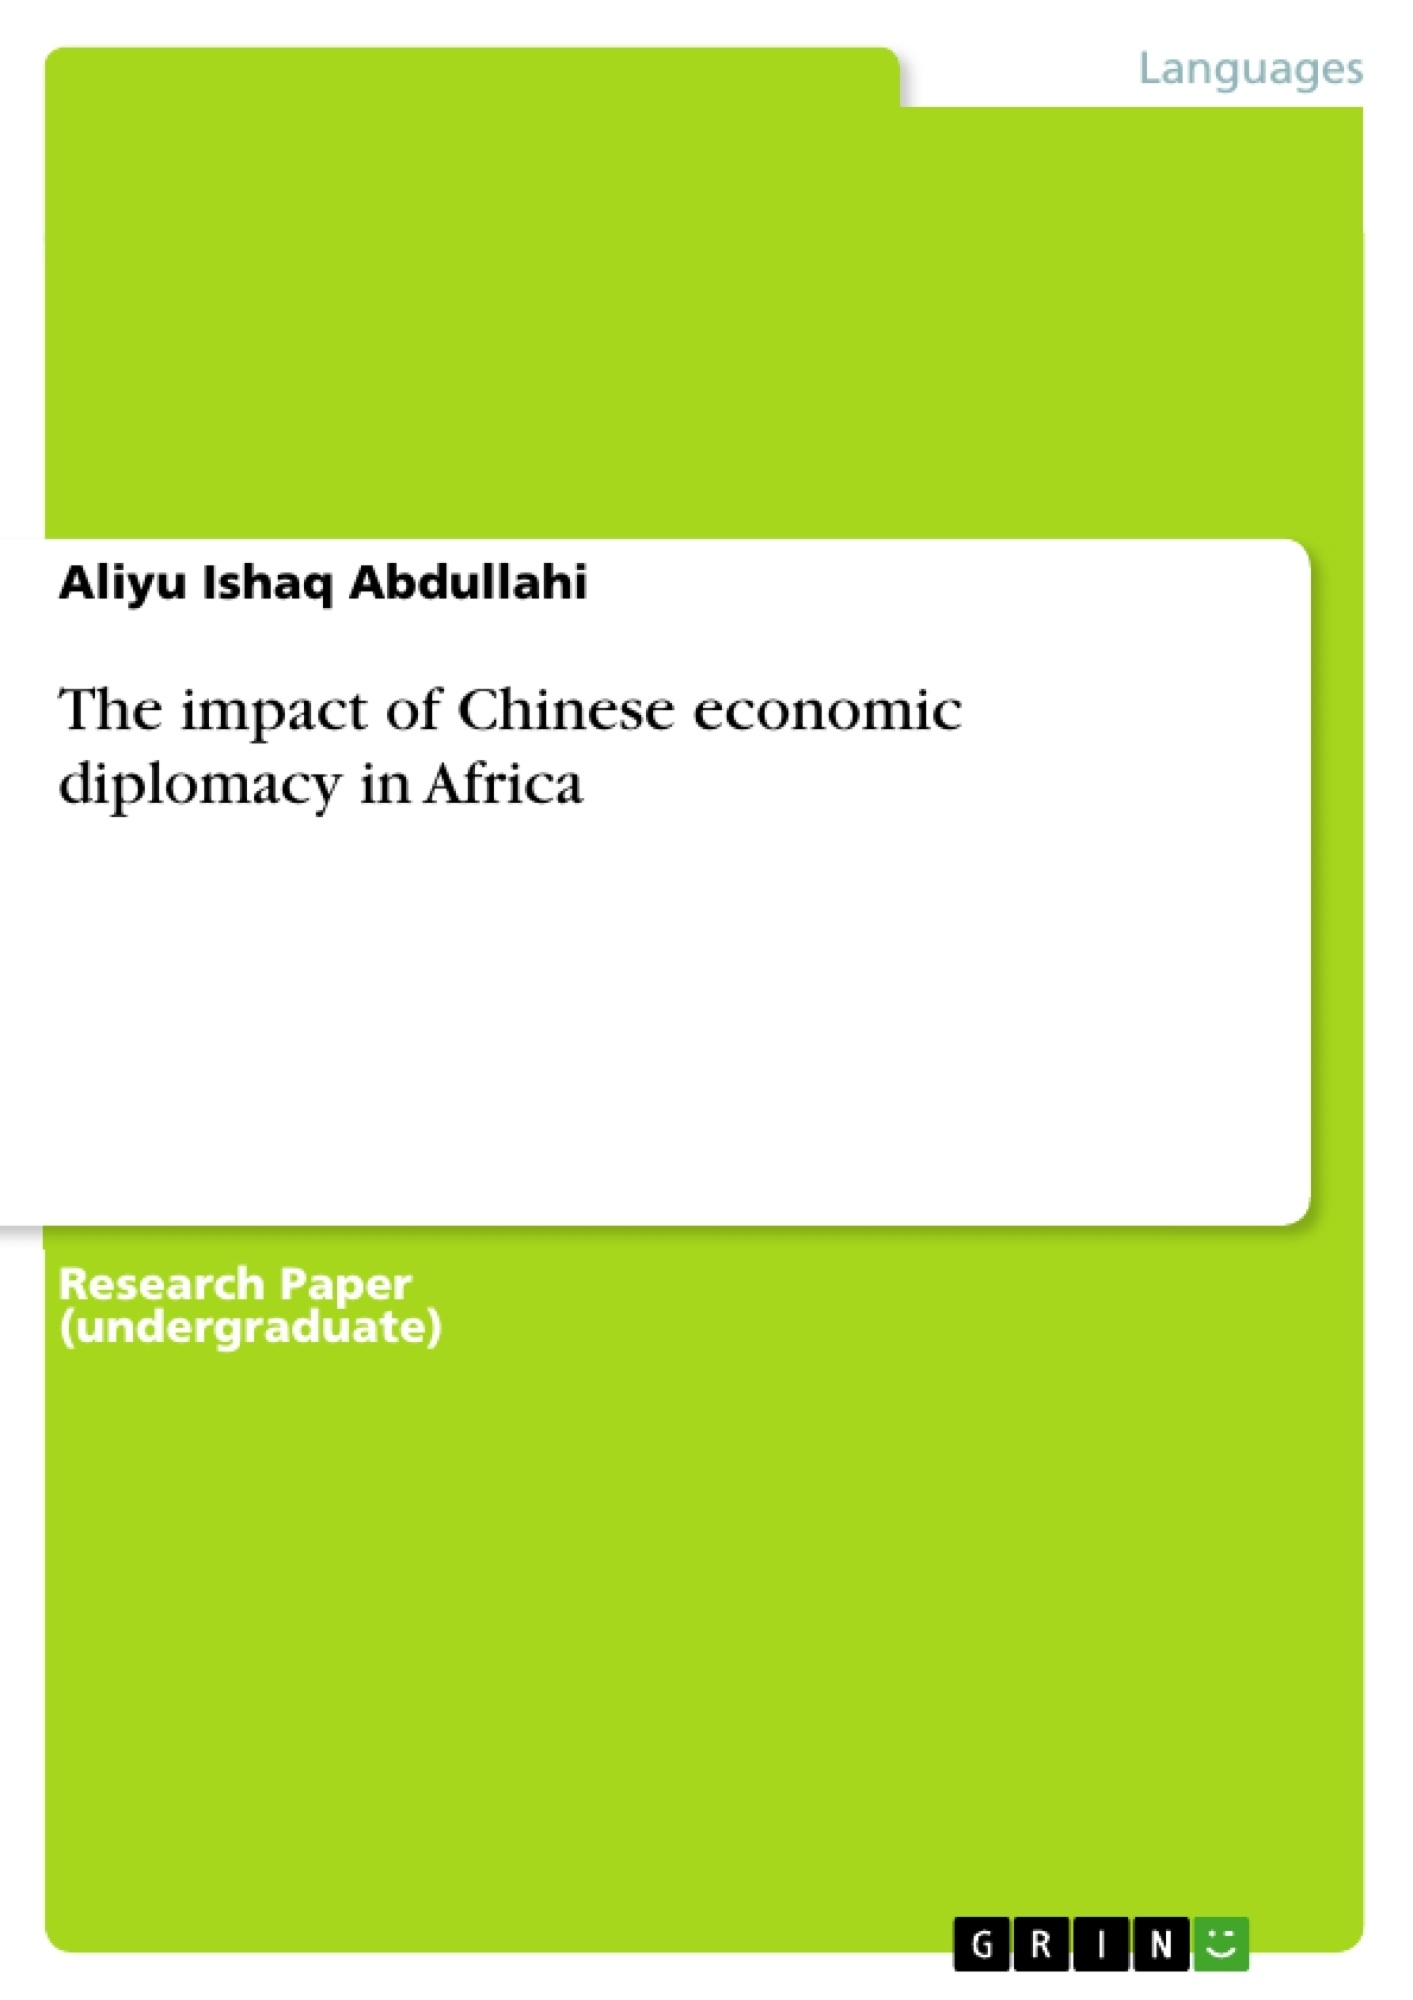 Title: The impact of Chinese economic diplomacy in Africa